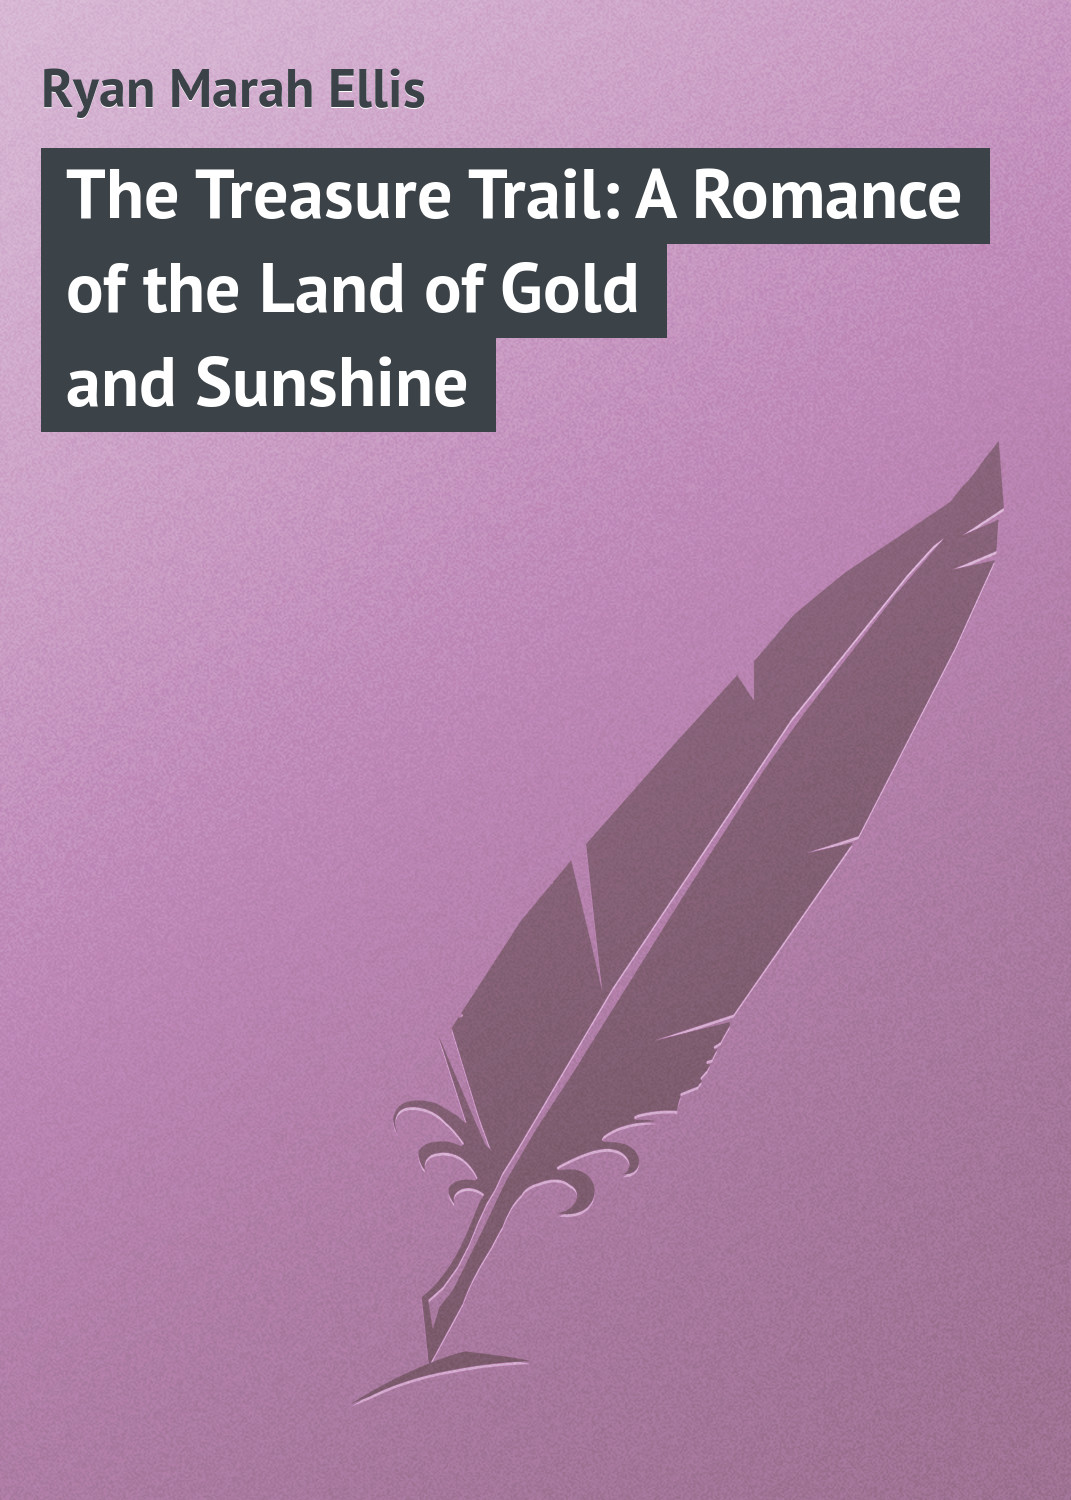 Ryan Marah Ellis The Treasure Trail: A Romance of the Land of Gold and Sunshine land of savagery land of promise – the european image of the american